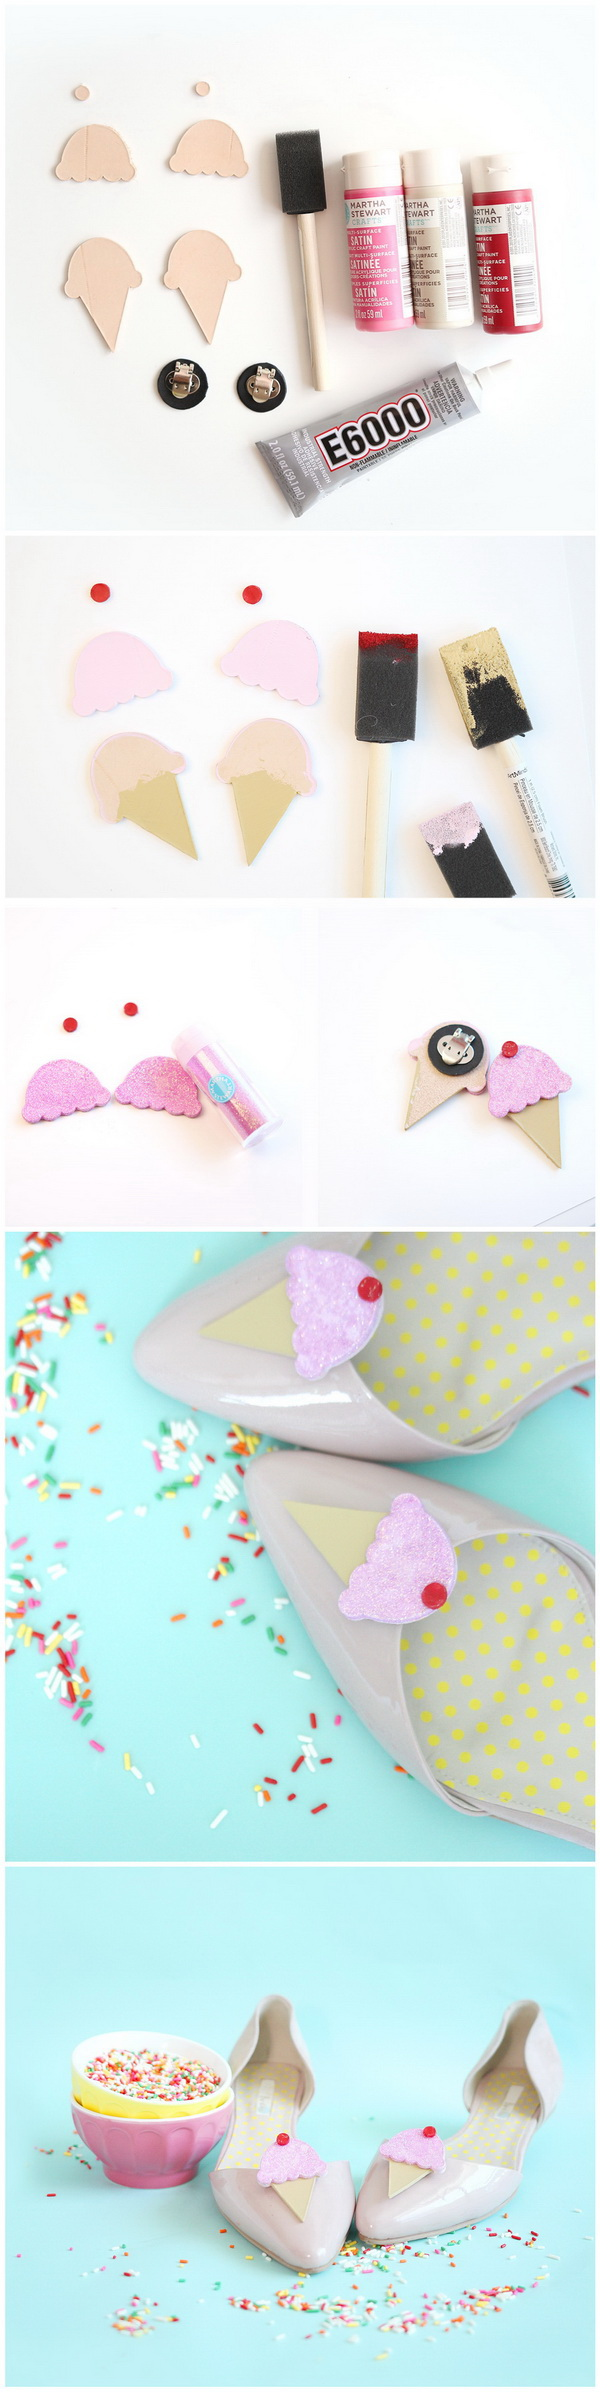 Ice Cream Cone Flats. Make your flats appealing by adding these DIY ice cream cone accents.